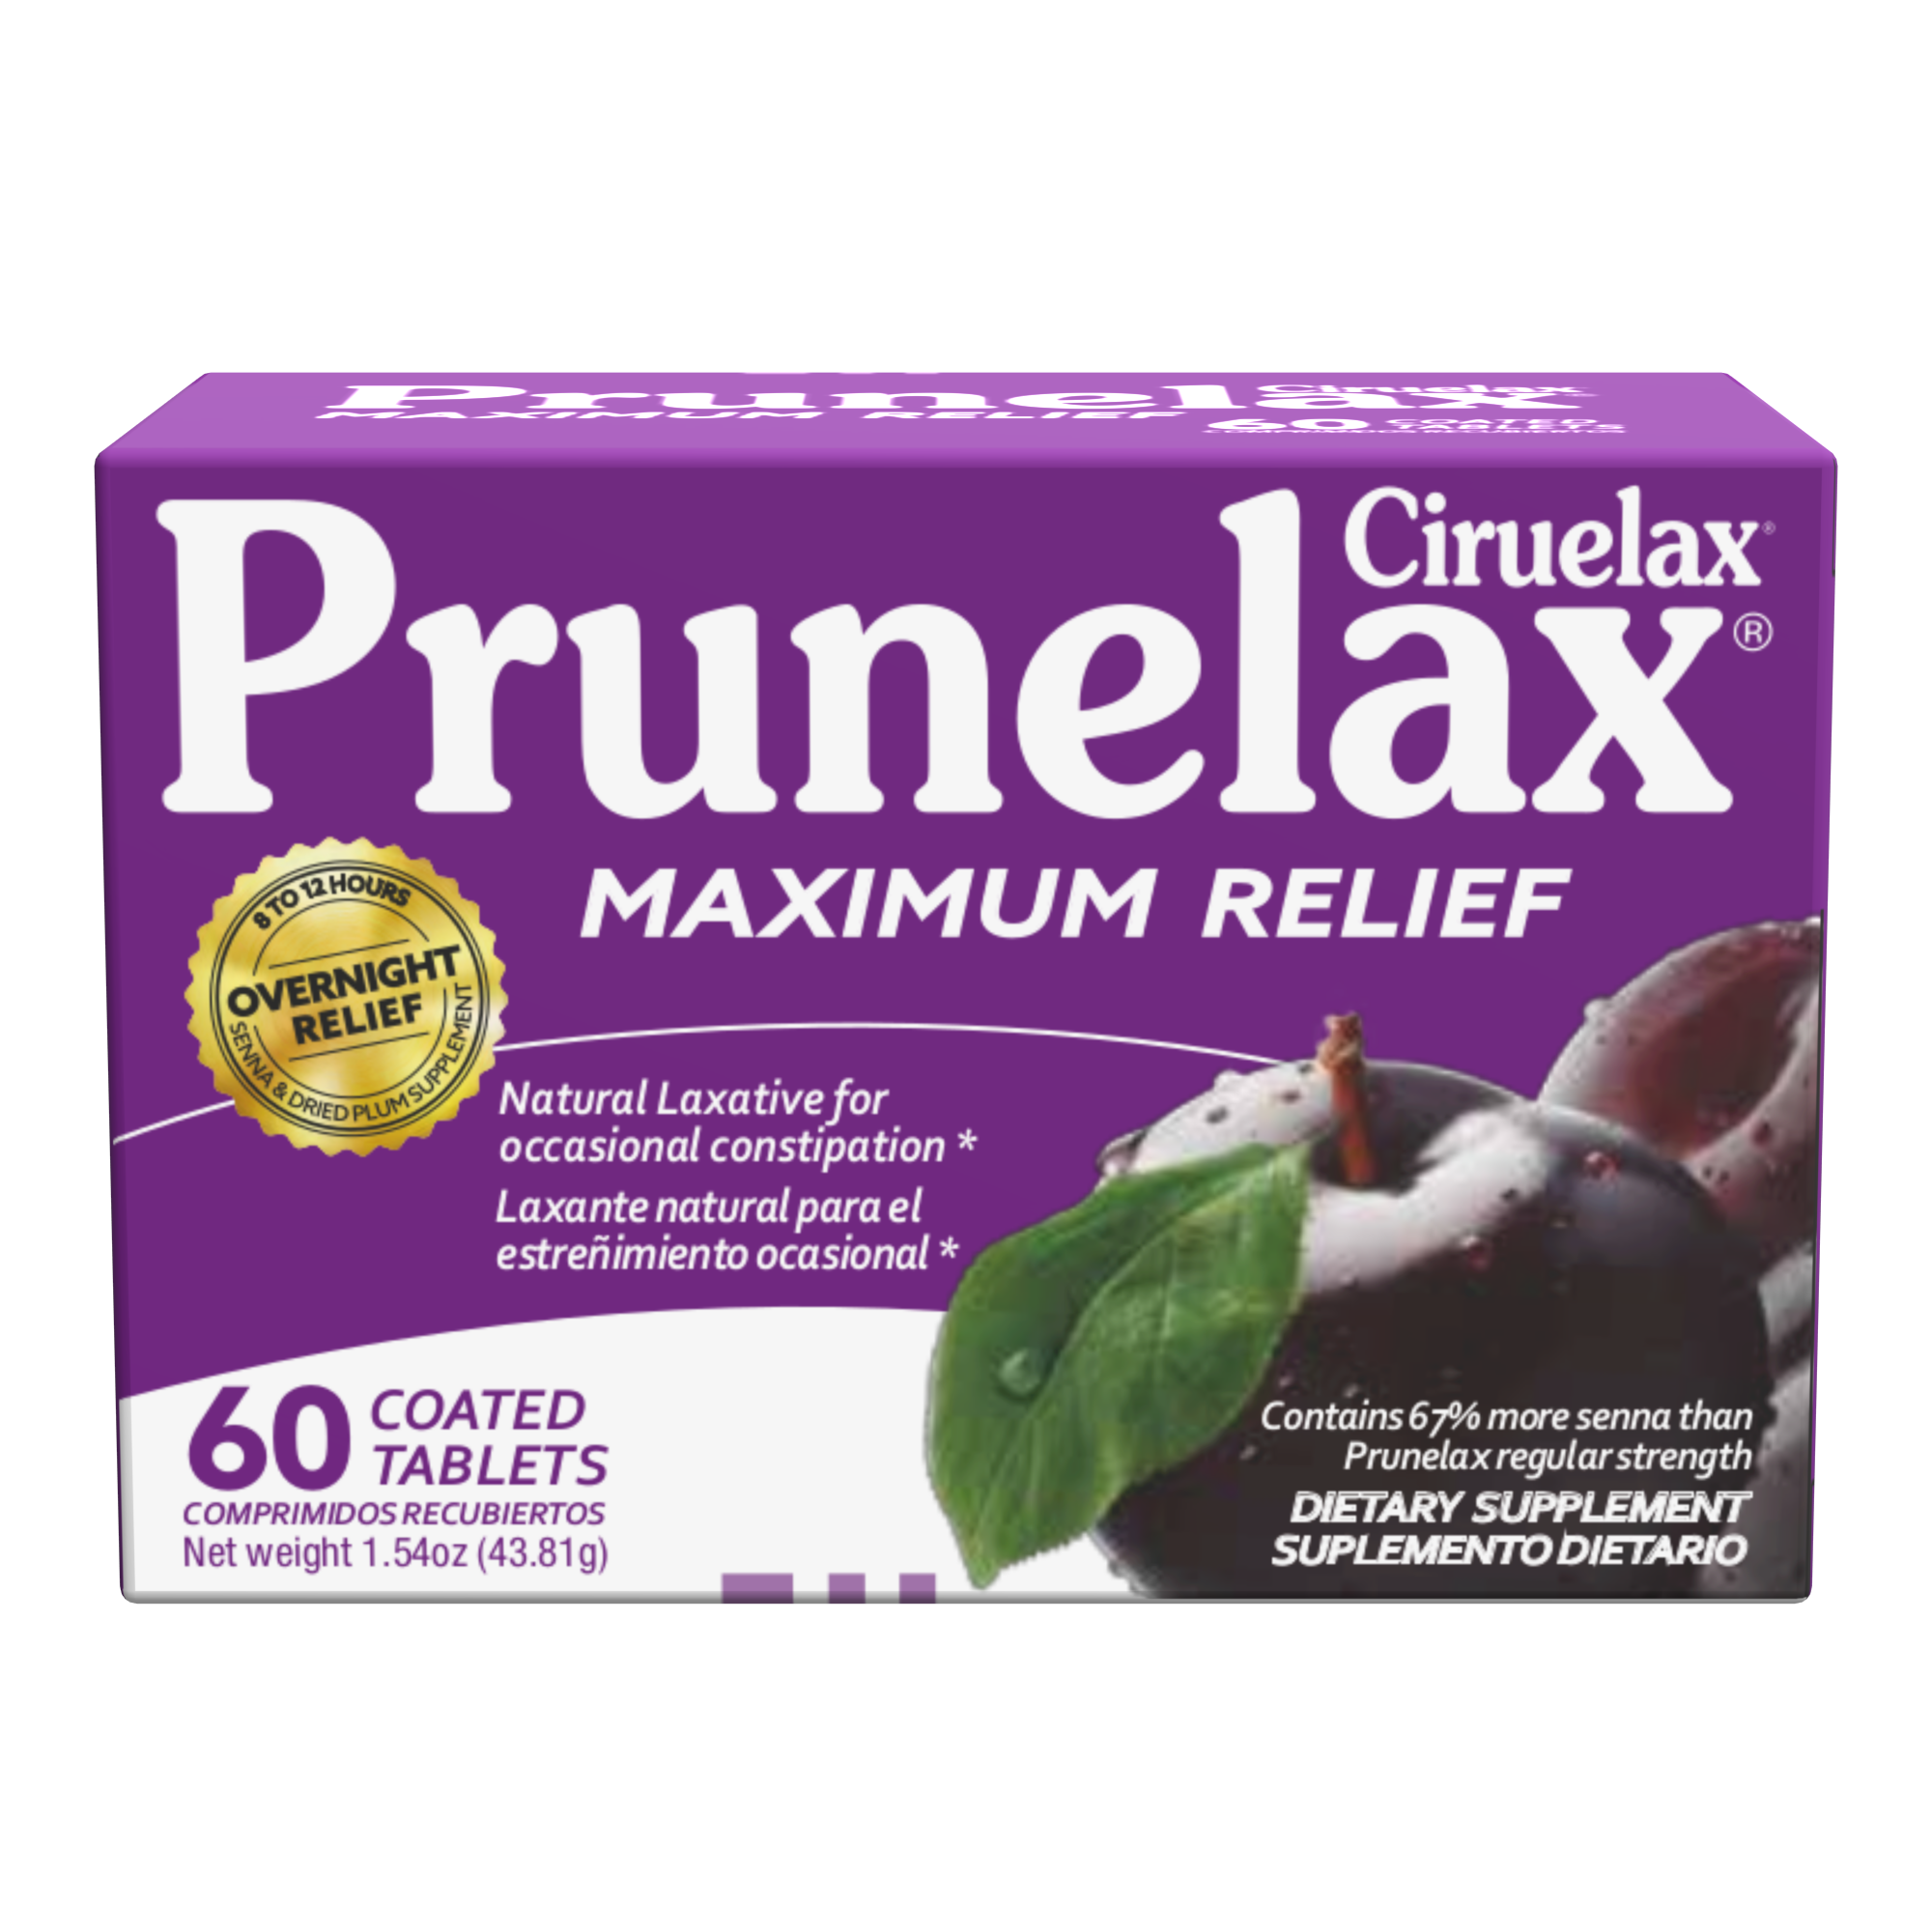 Prunelax Extra Strength Tablets, Natural Laxative For Occasional Constipation, 60 Ct.